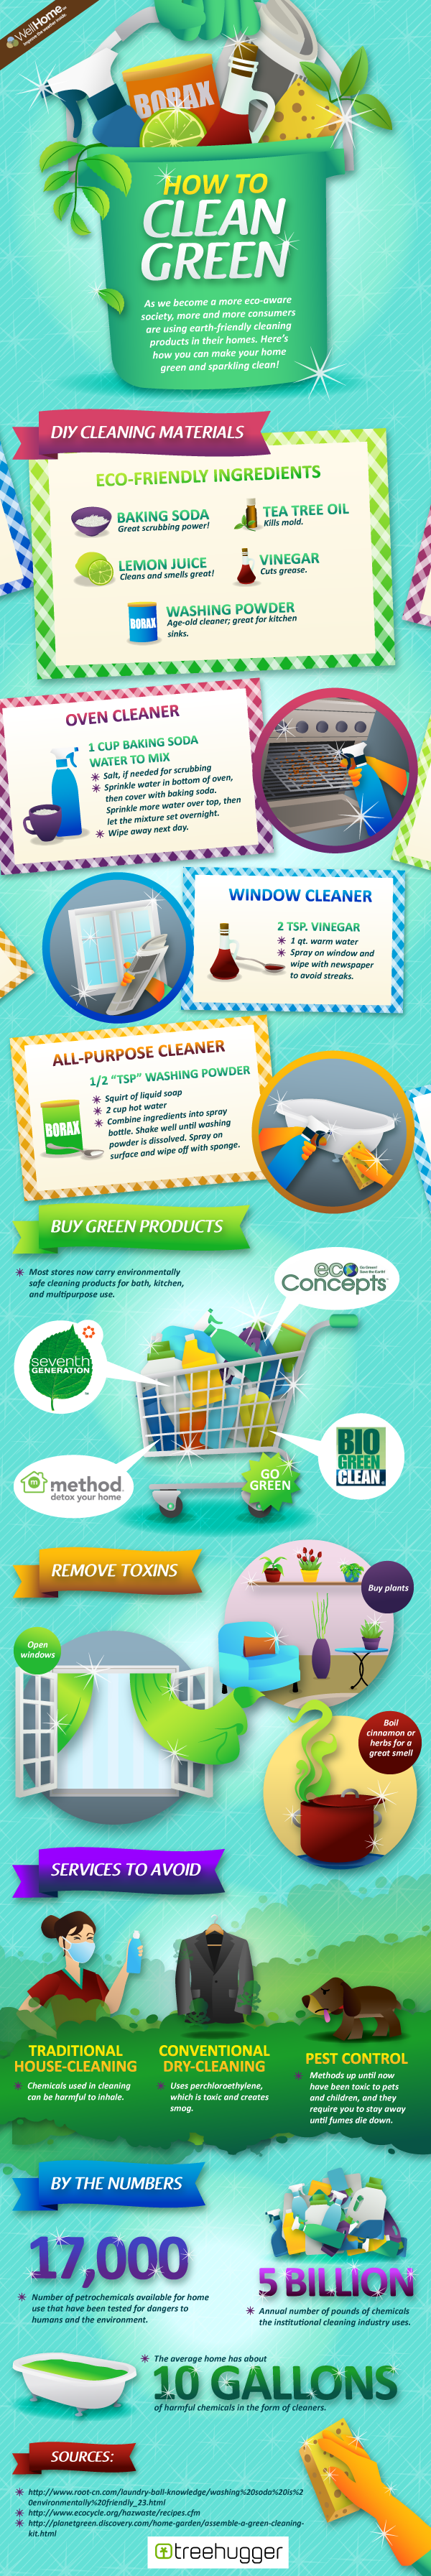 Natural cleaning infographic